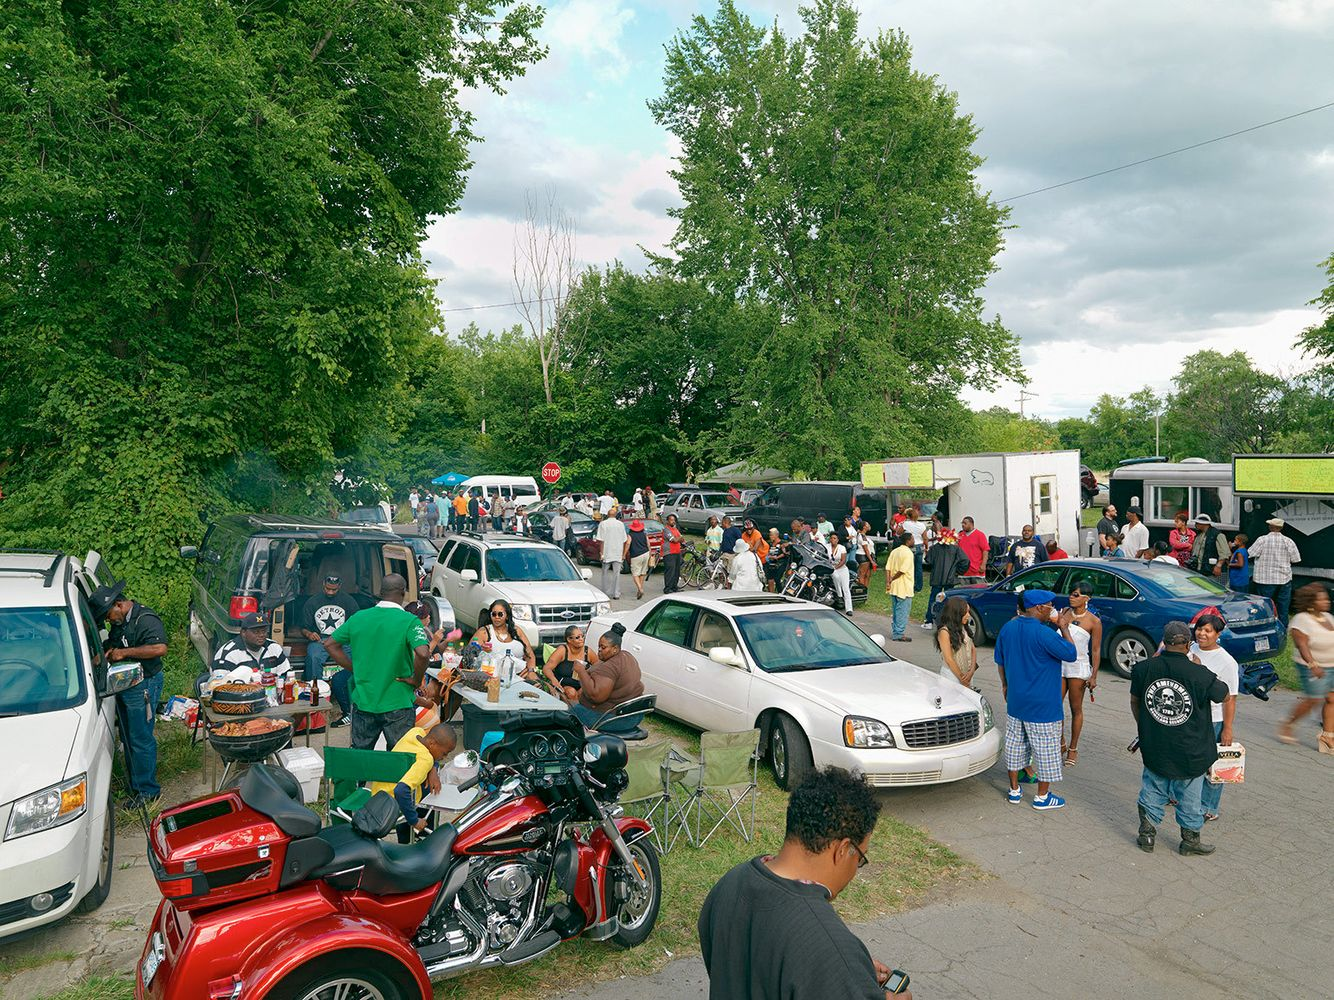 Crowd Gathering, St. Aubin Outdoor Music Festival, Eastside, Detroit 2013